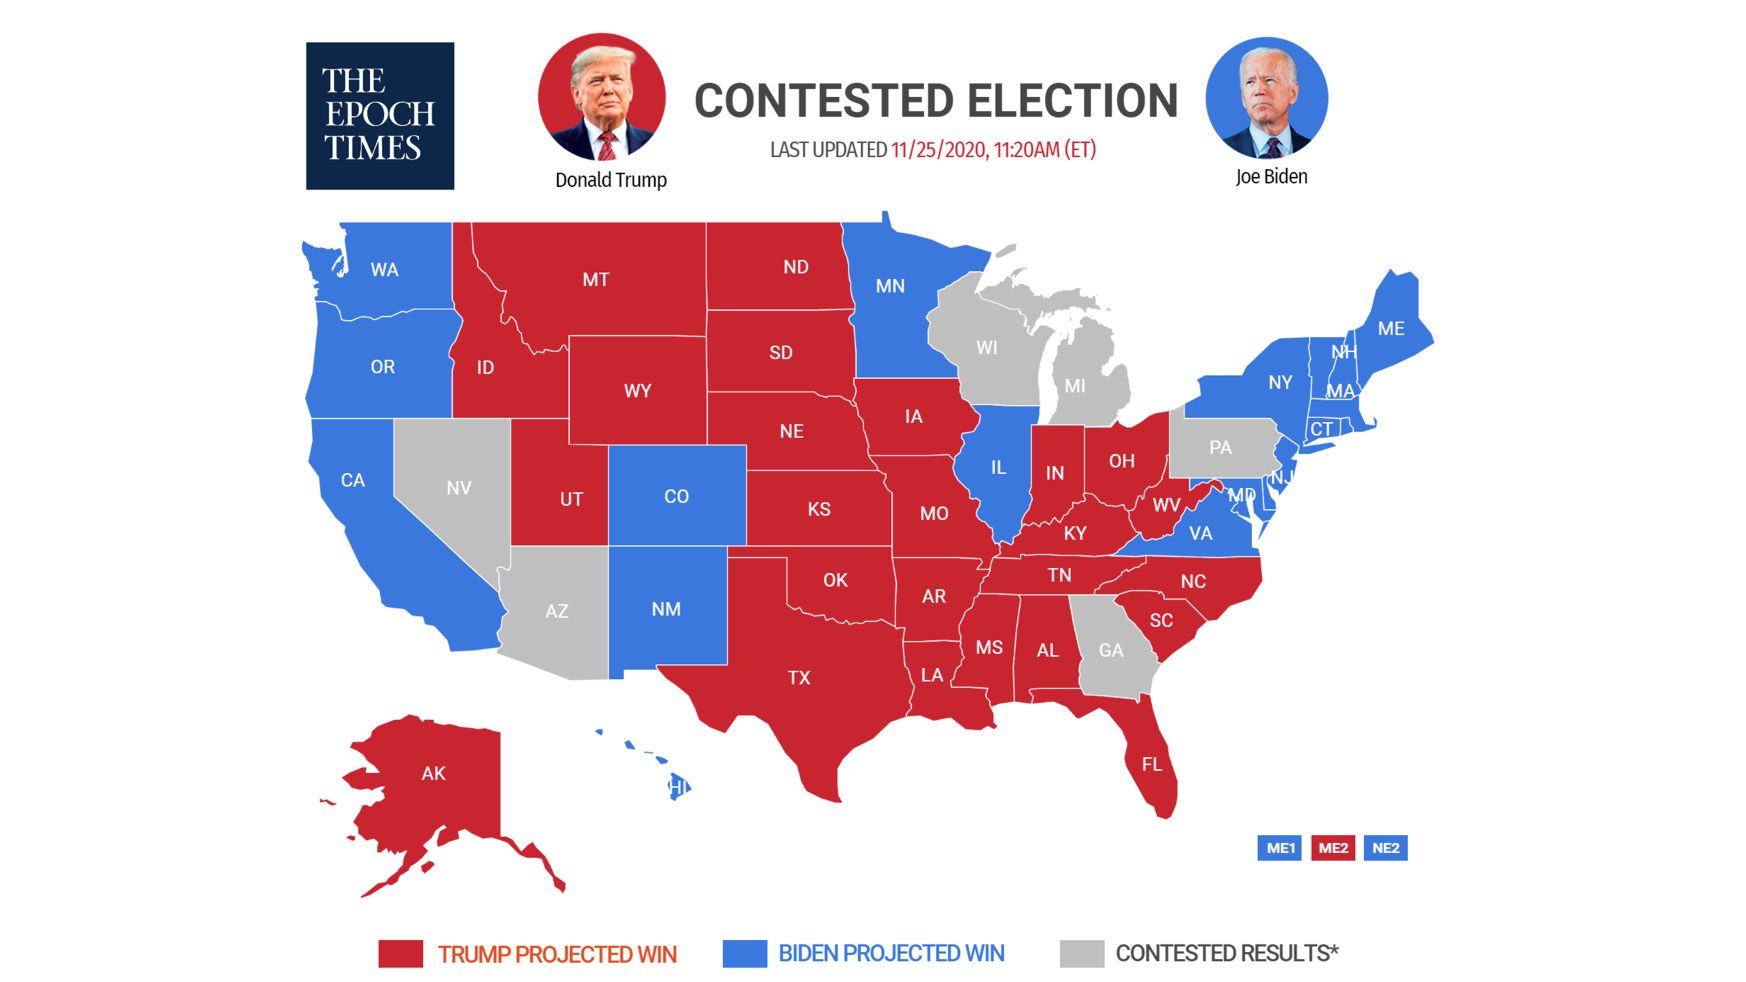 Election Map of Contested Elections by The Epoch Times